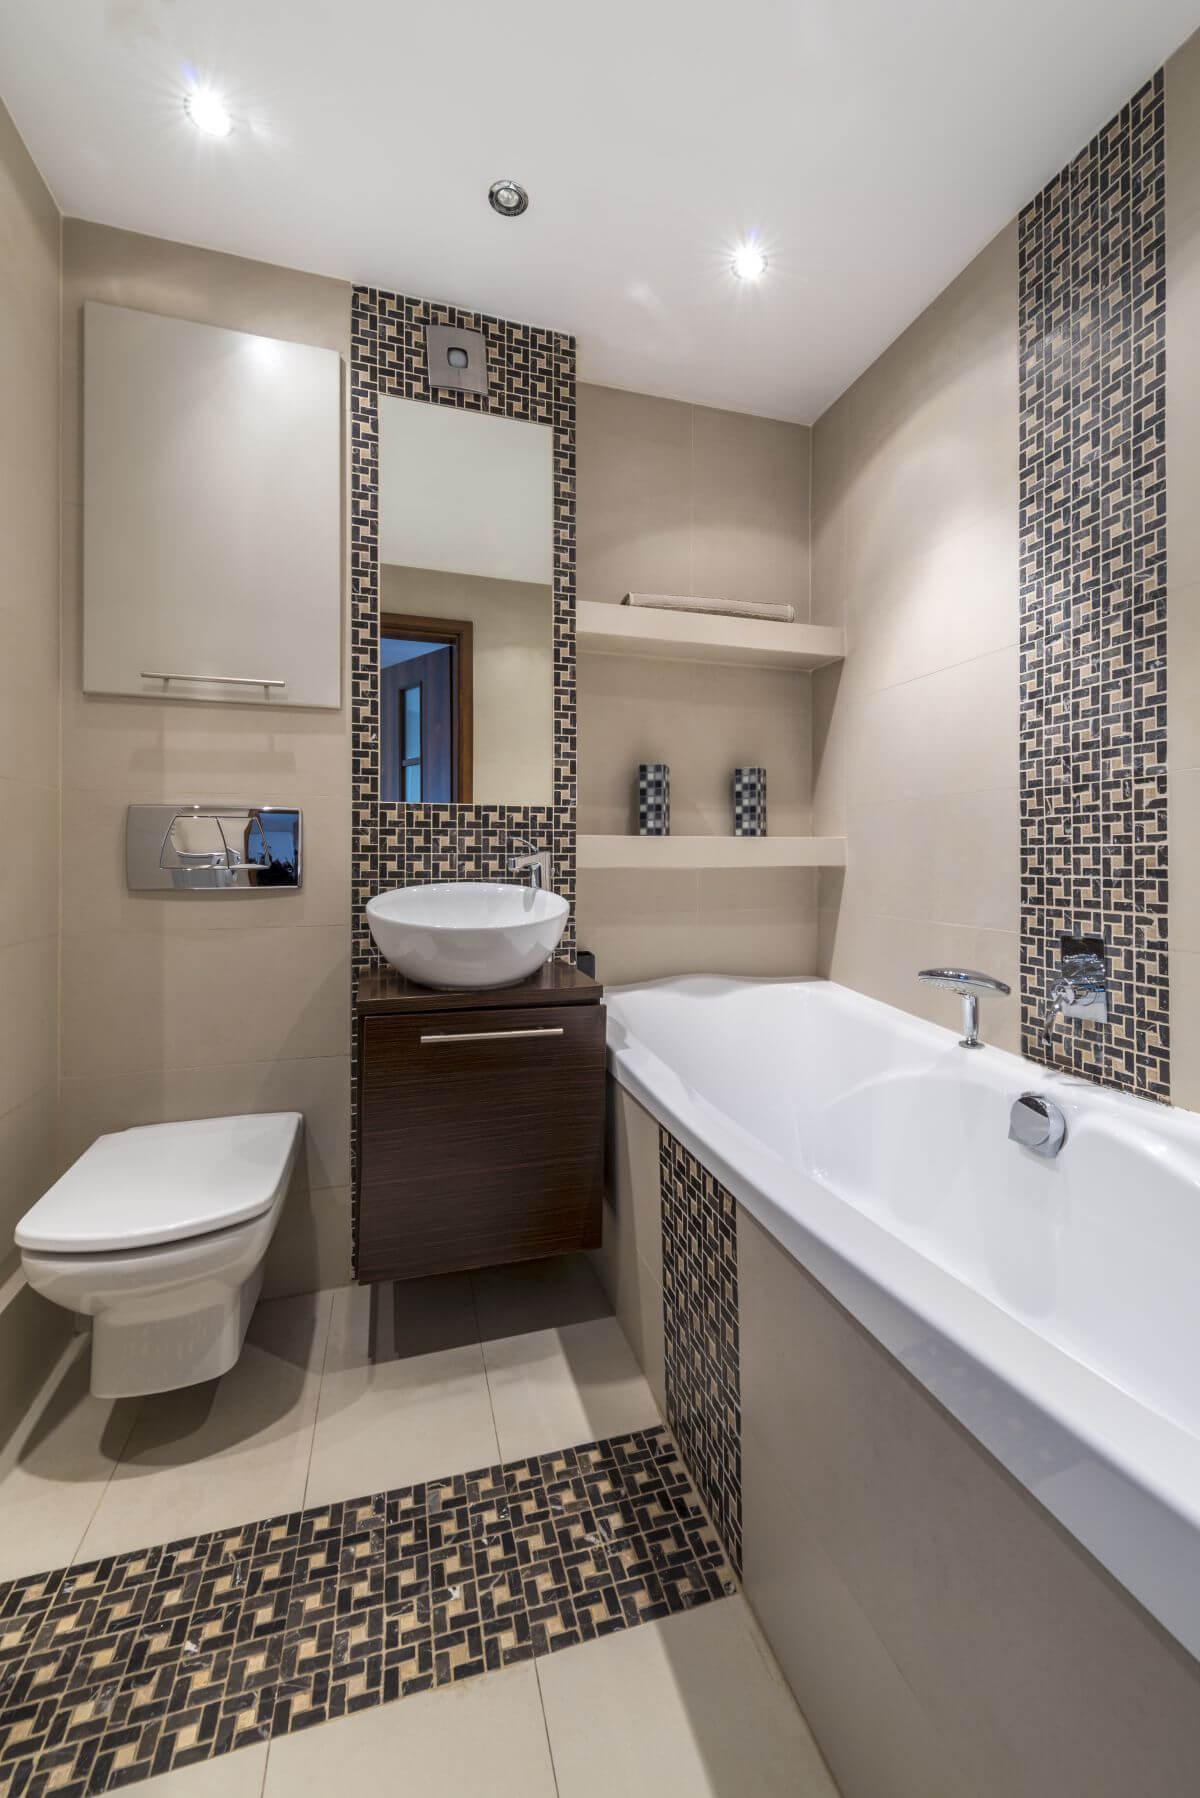 Best Small Bathroom Designs. Minimalist Design With Repeated Tile Patterns